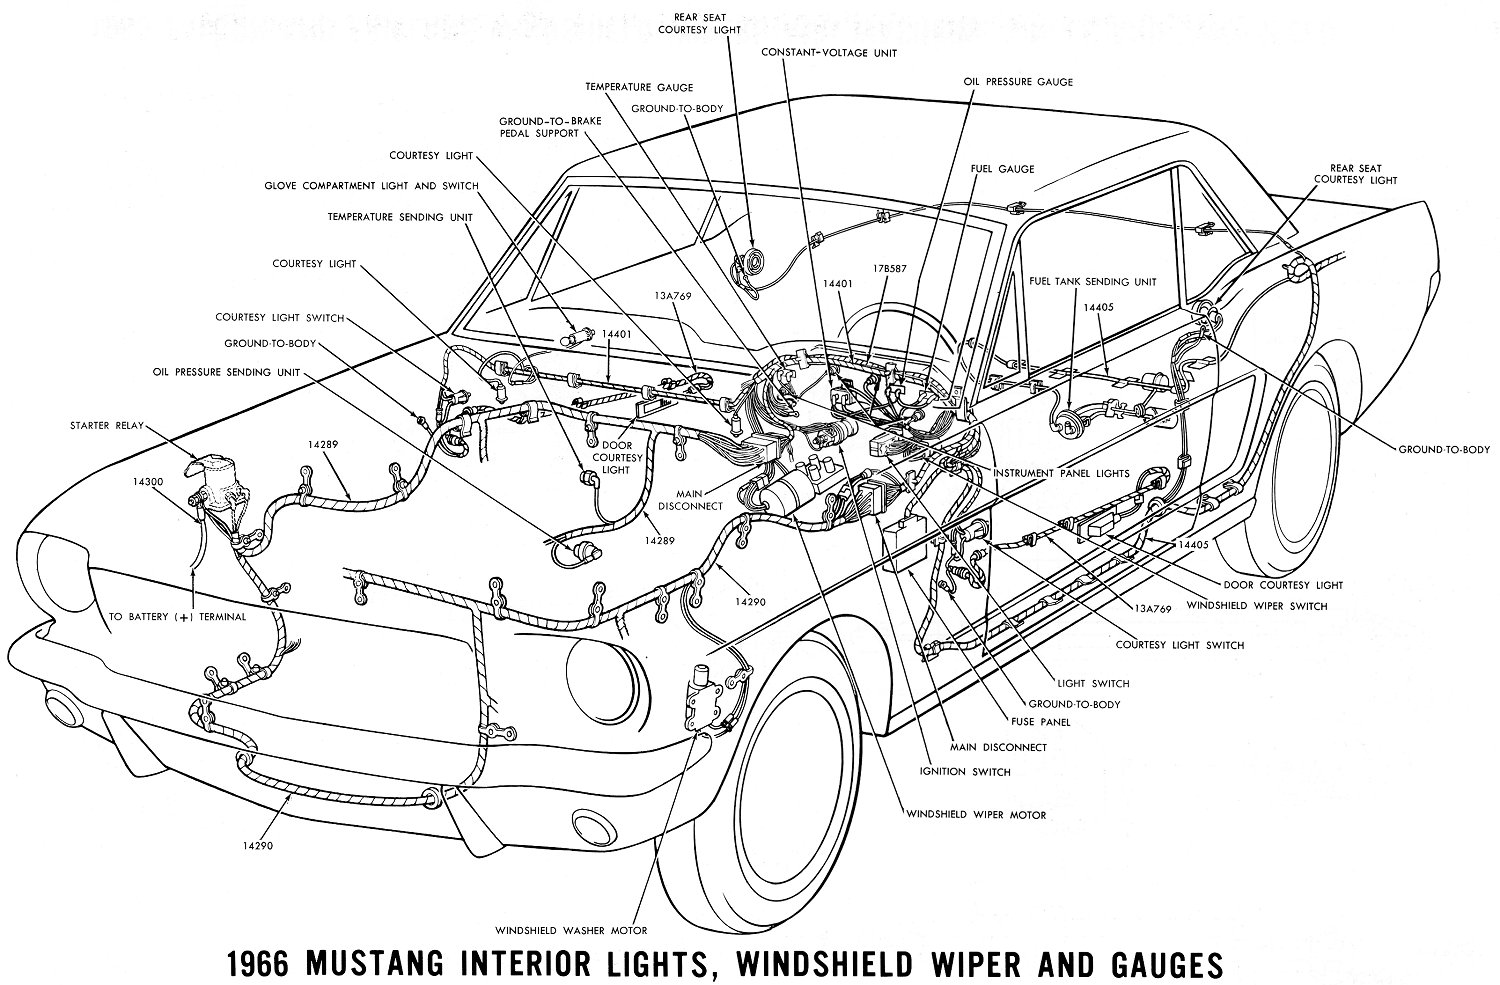 66inter 1966 mustang wiring diagrams average joe restoration 1966 mustang radio wiring diagram at bakdesigns.co